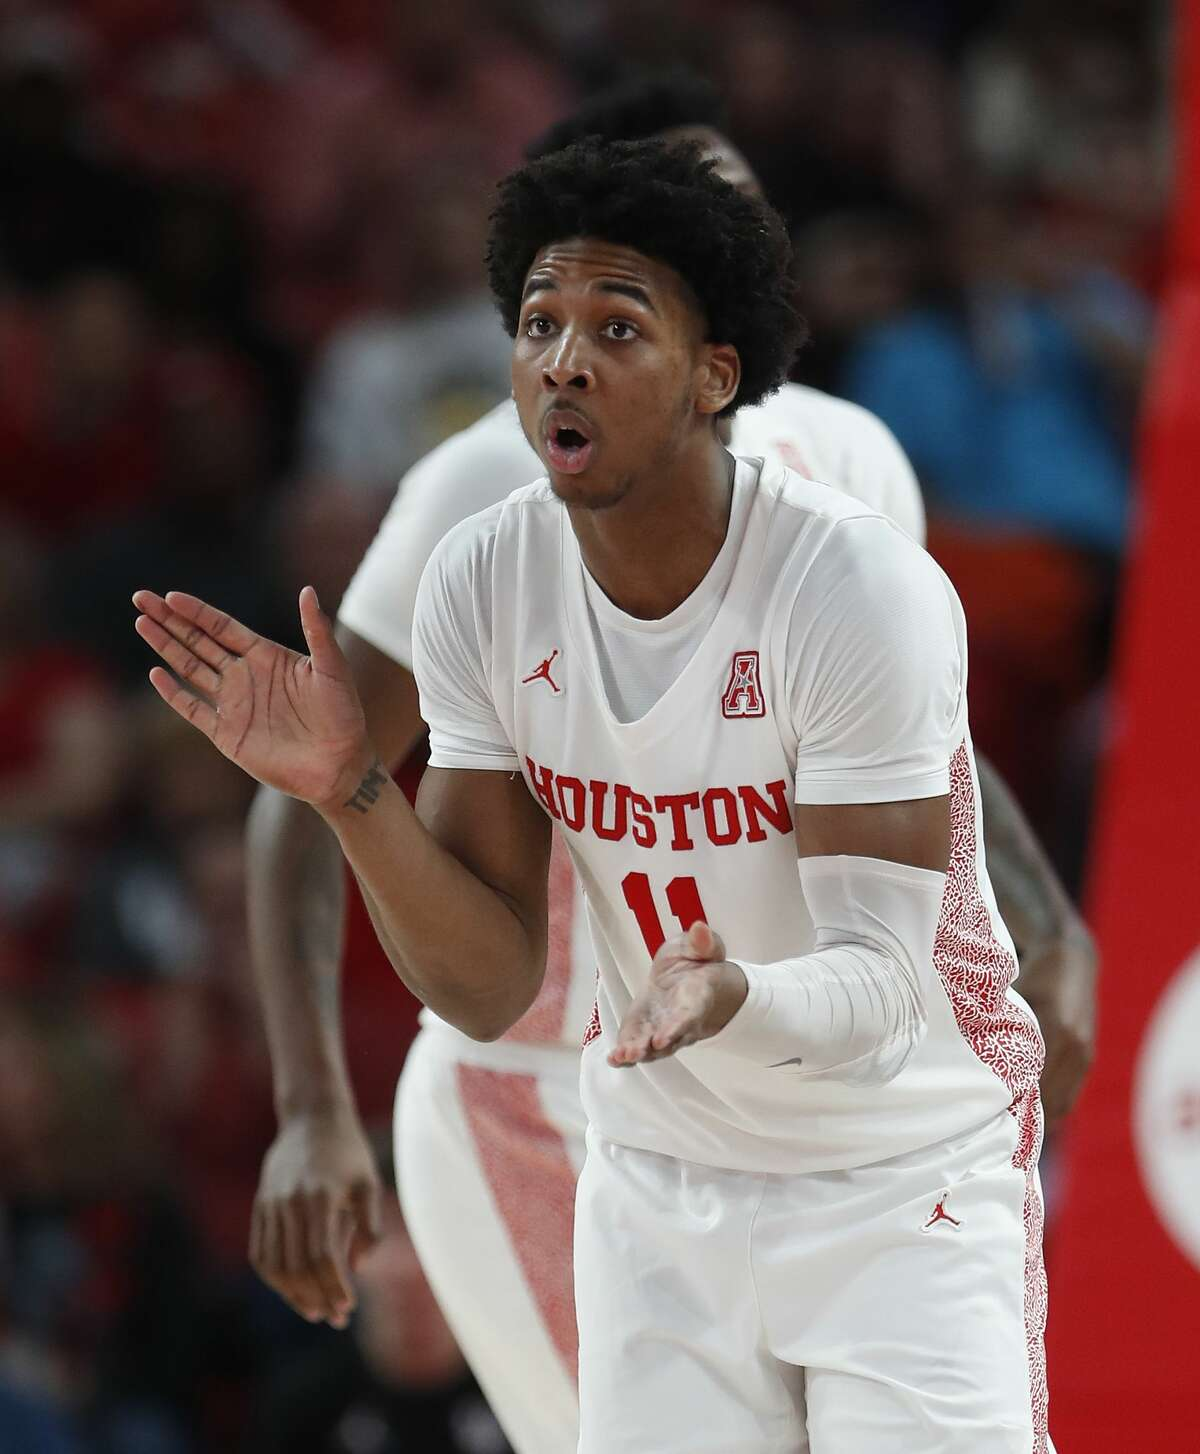 Houston Cougars guard Nate Hinton (11) reacts after a three-pointer during the second half of an NCAA Men's basketball game at the Fertitta Center, in Houston, Thursday, Feb. 6, 2020.